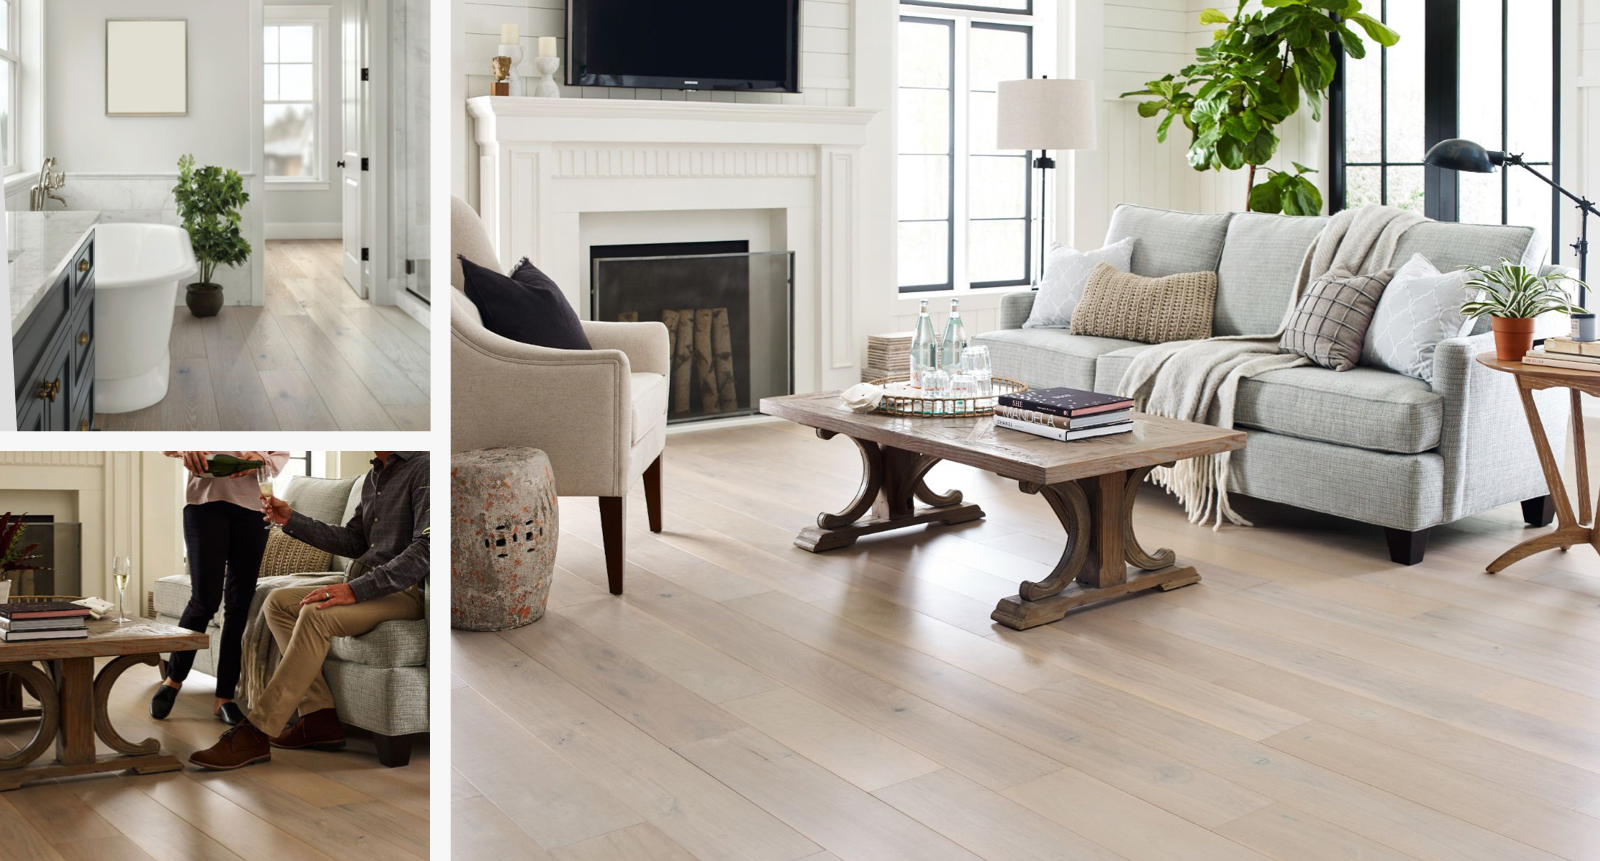 Floorte waterproof hardwood flooring for your home | Signature Flooring